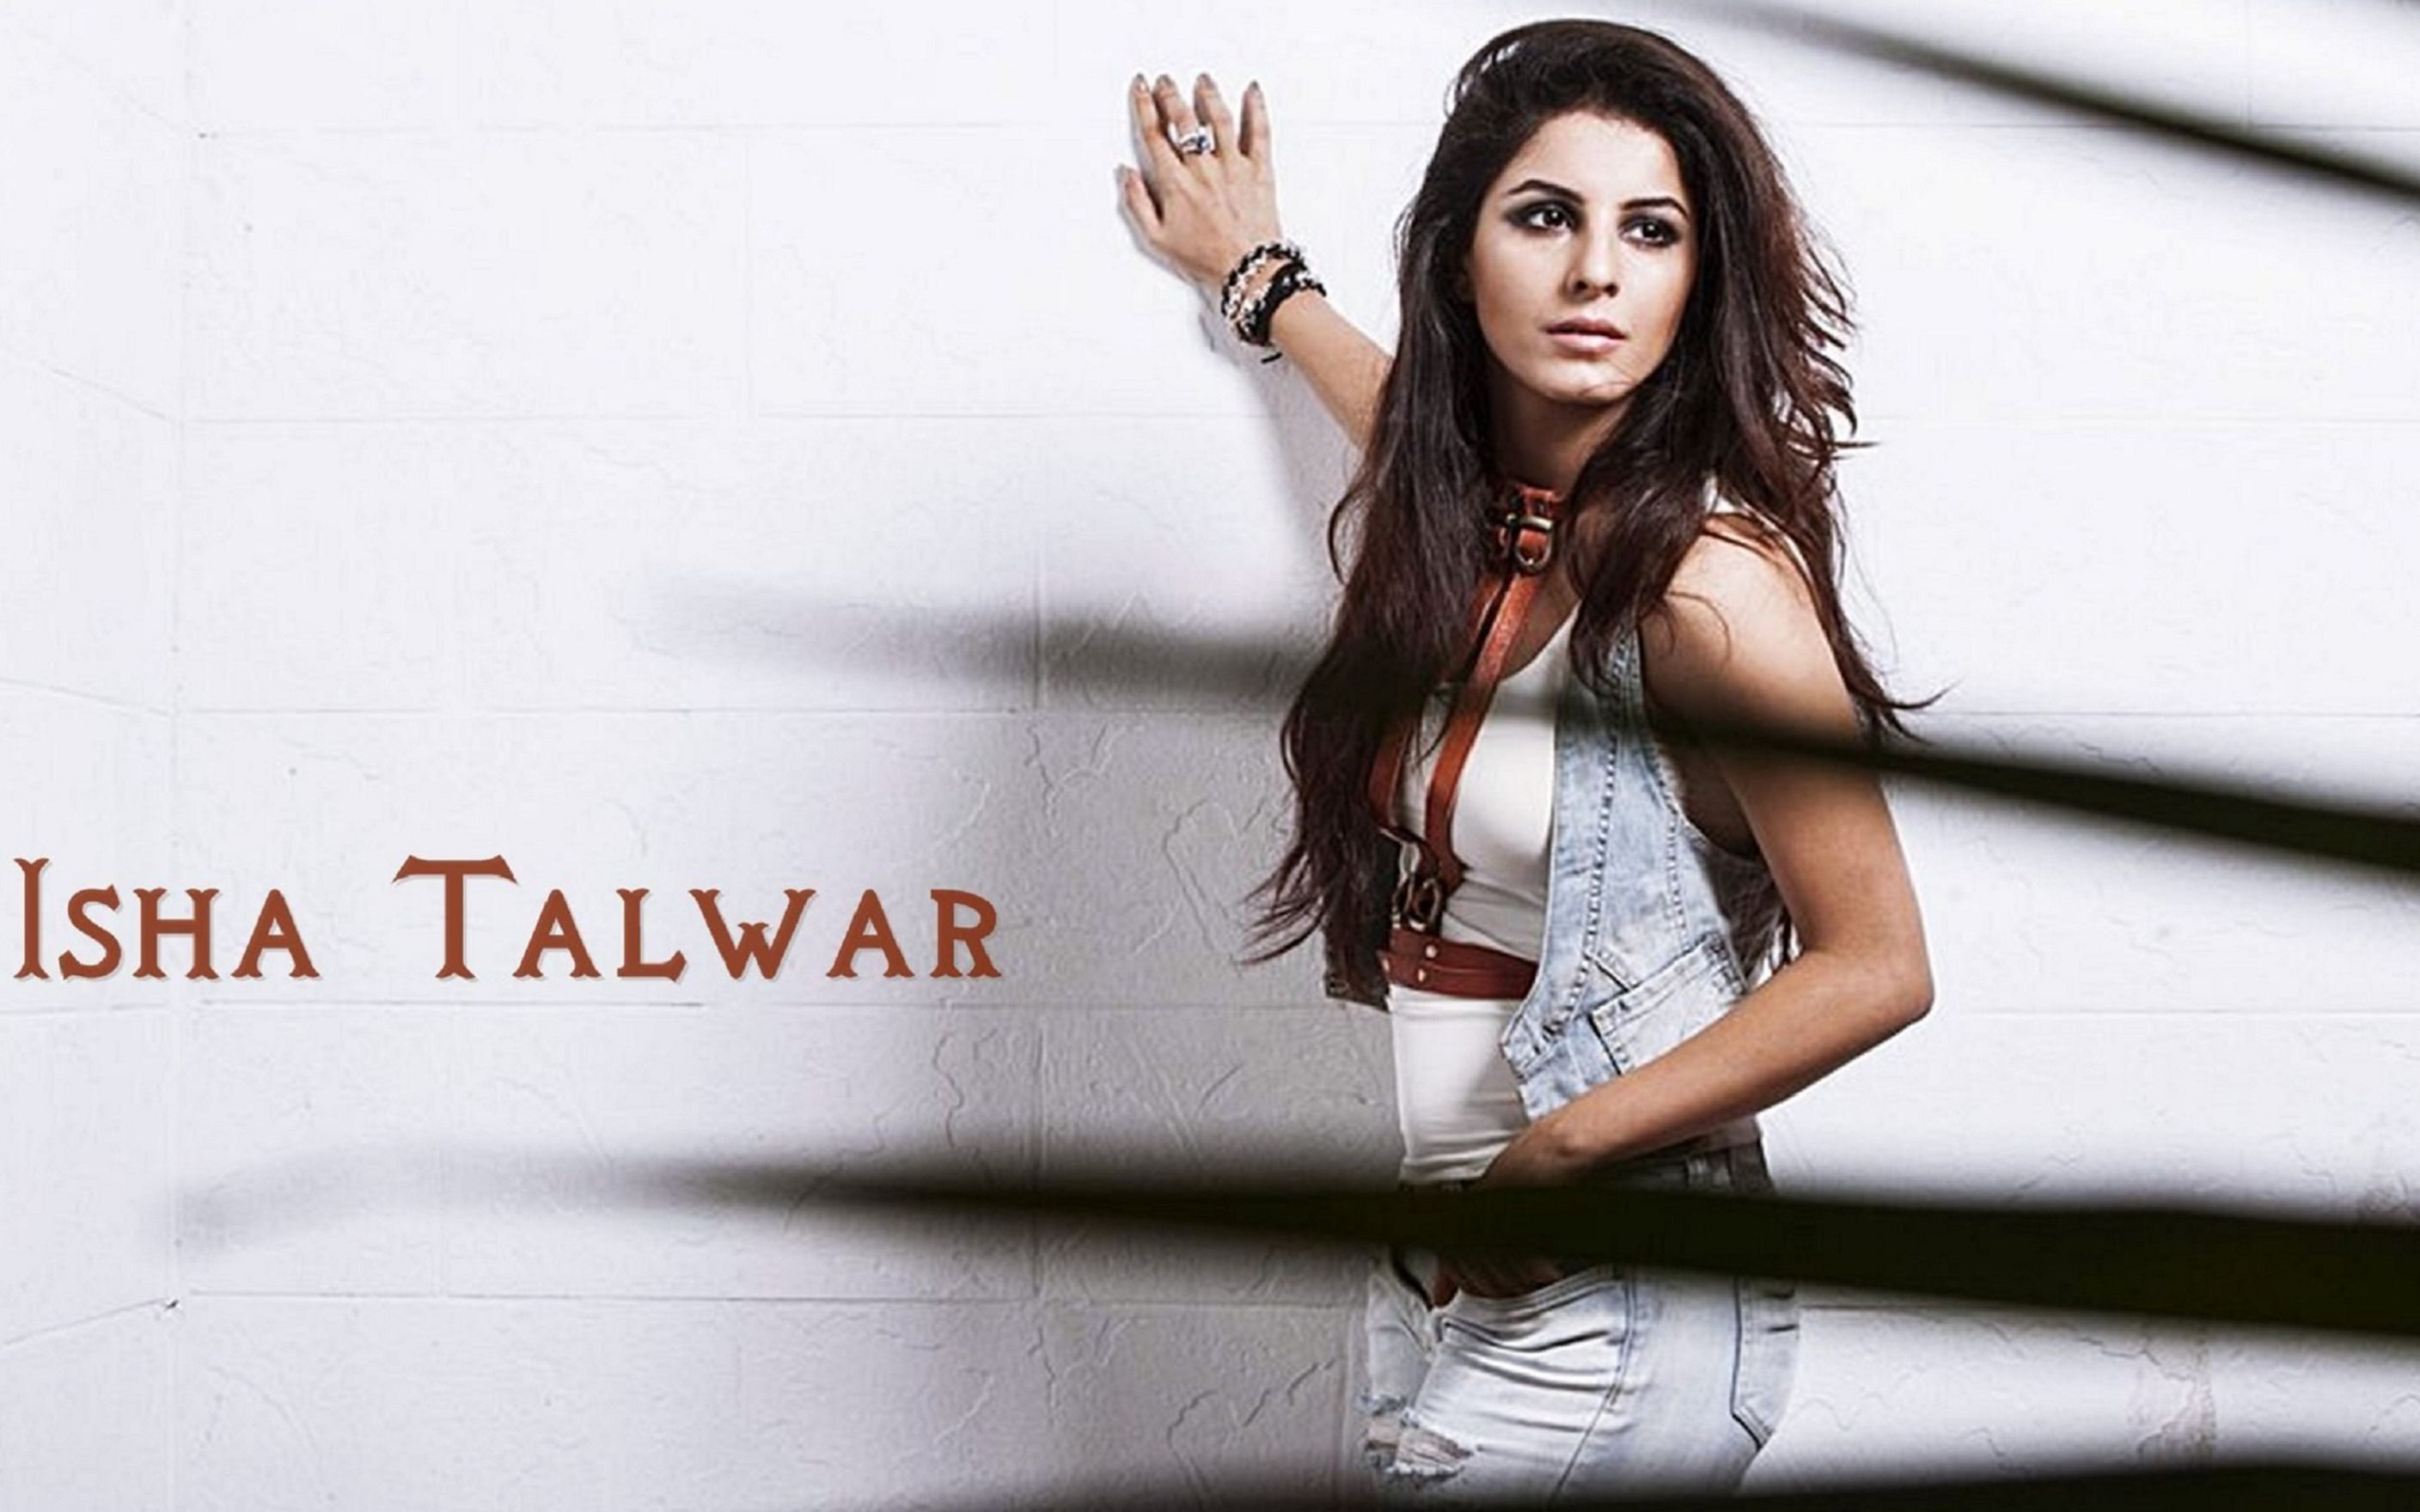 Download free HD Isha Talwar Wallpaper, image